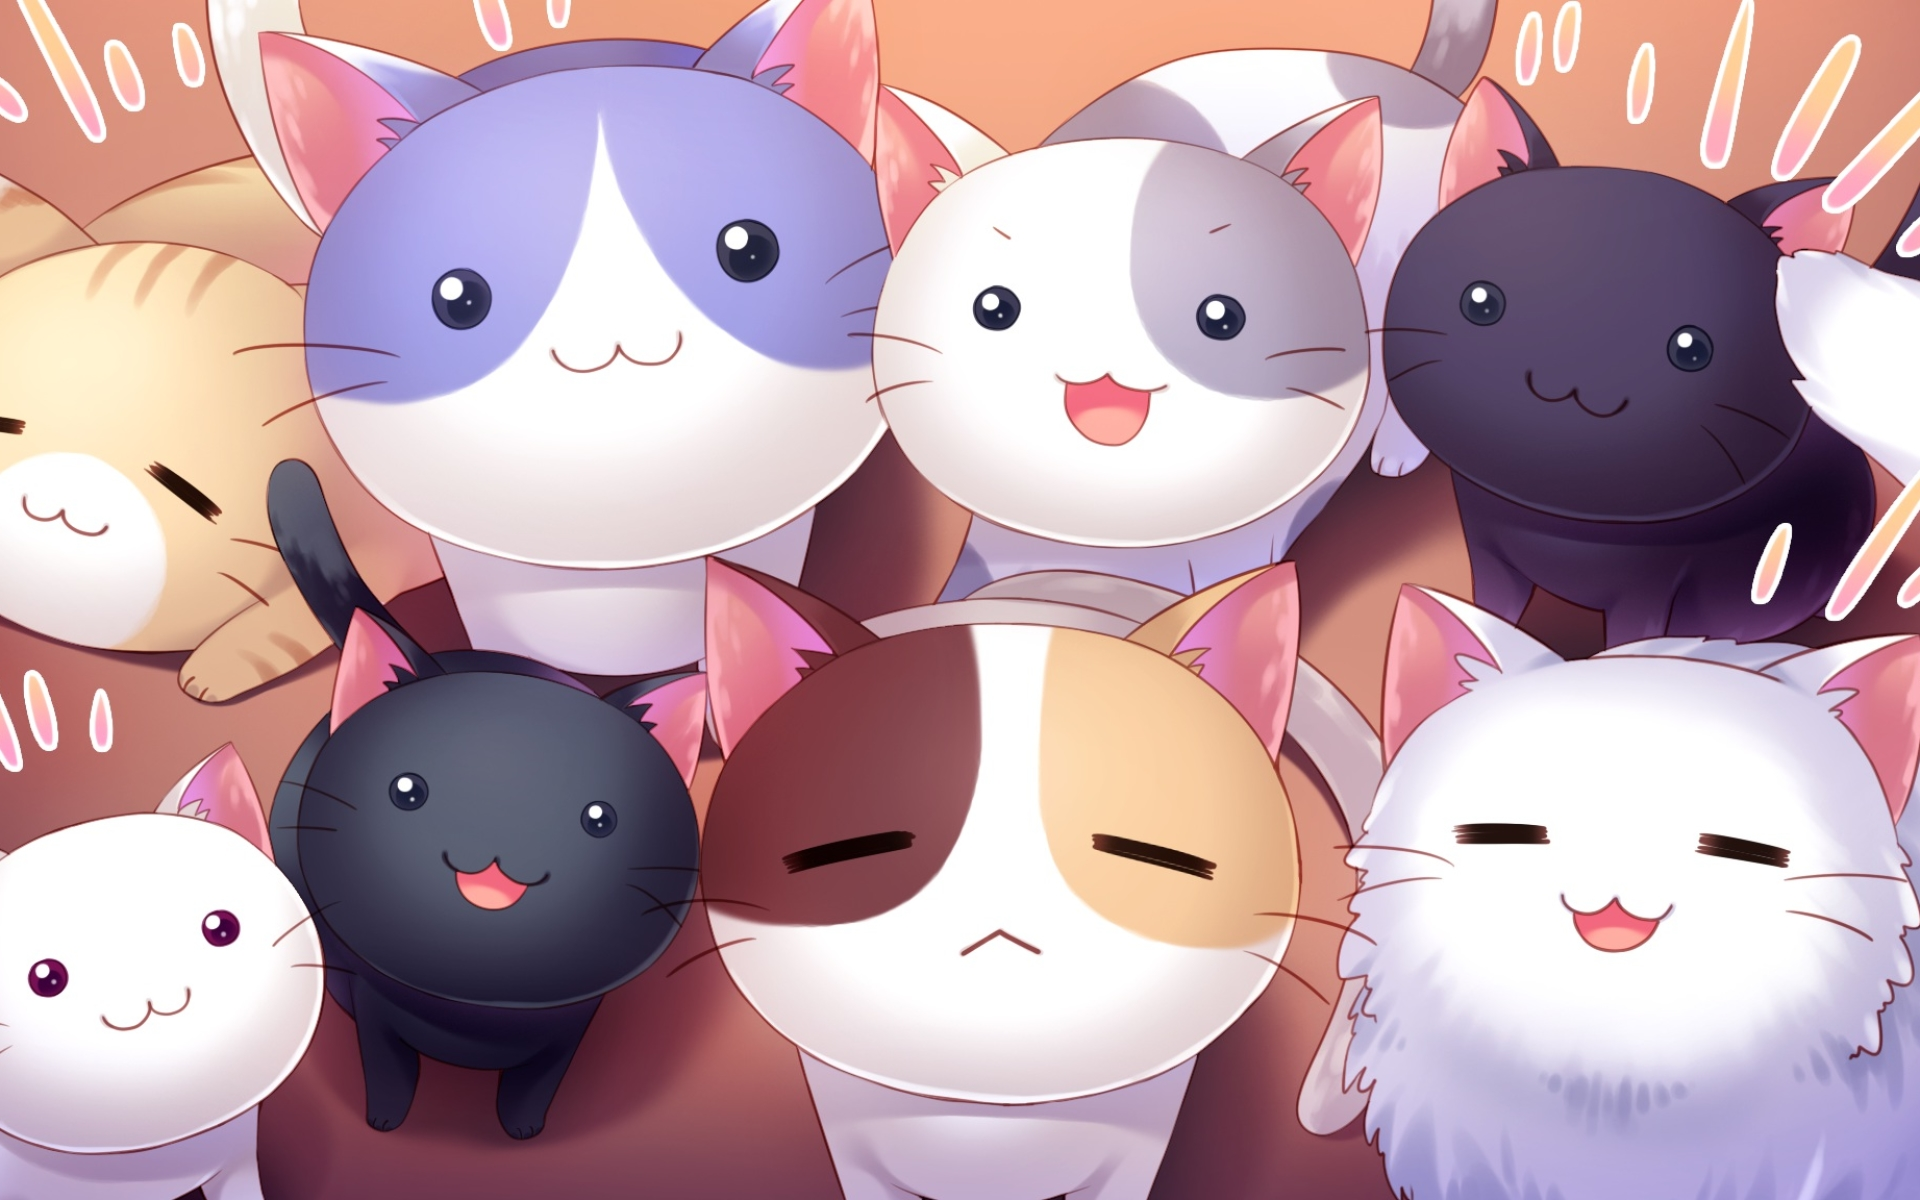 Wallpaper Of Cat Cute Smile Stare Anime Background Hd Image